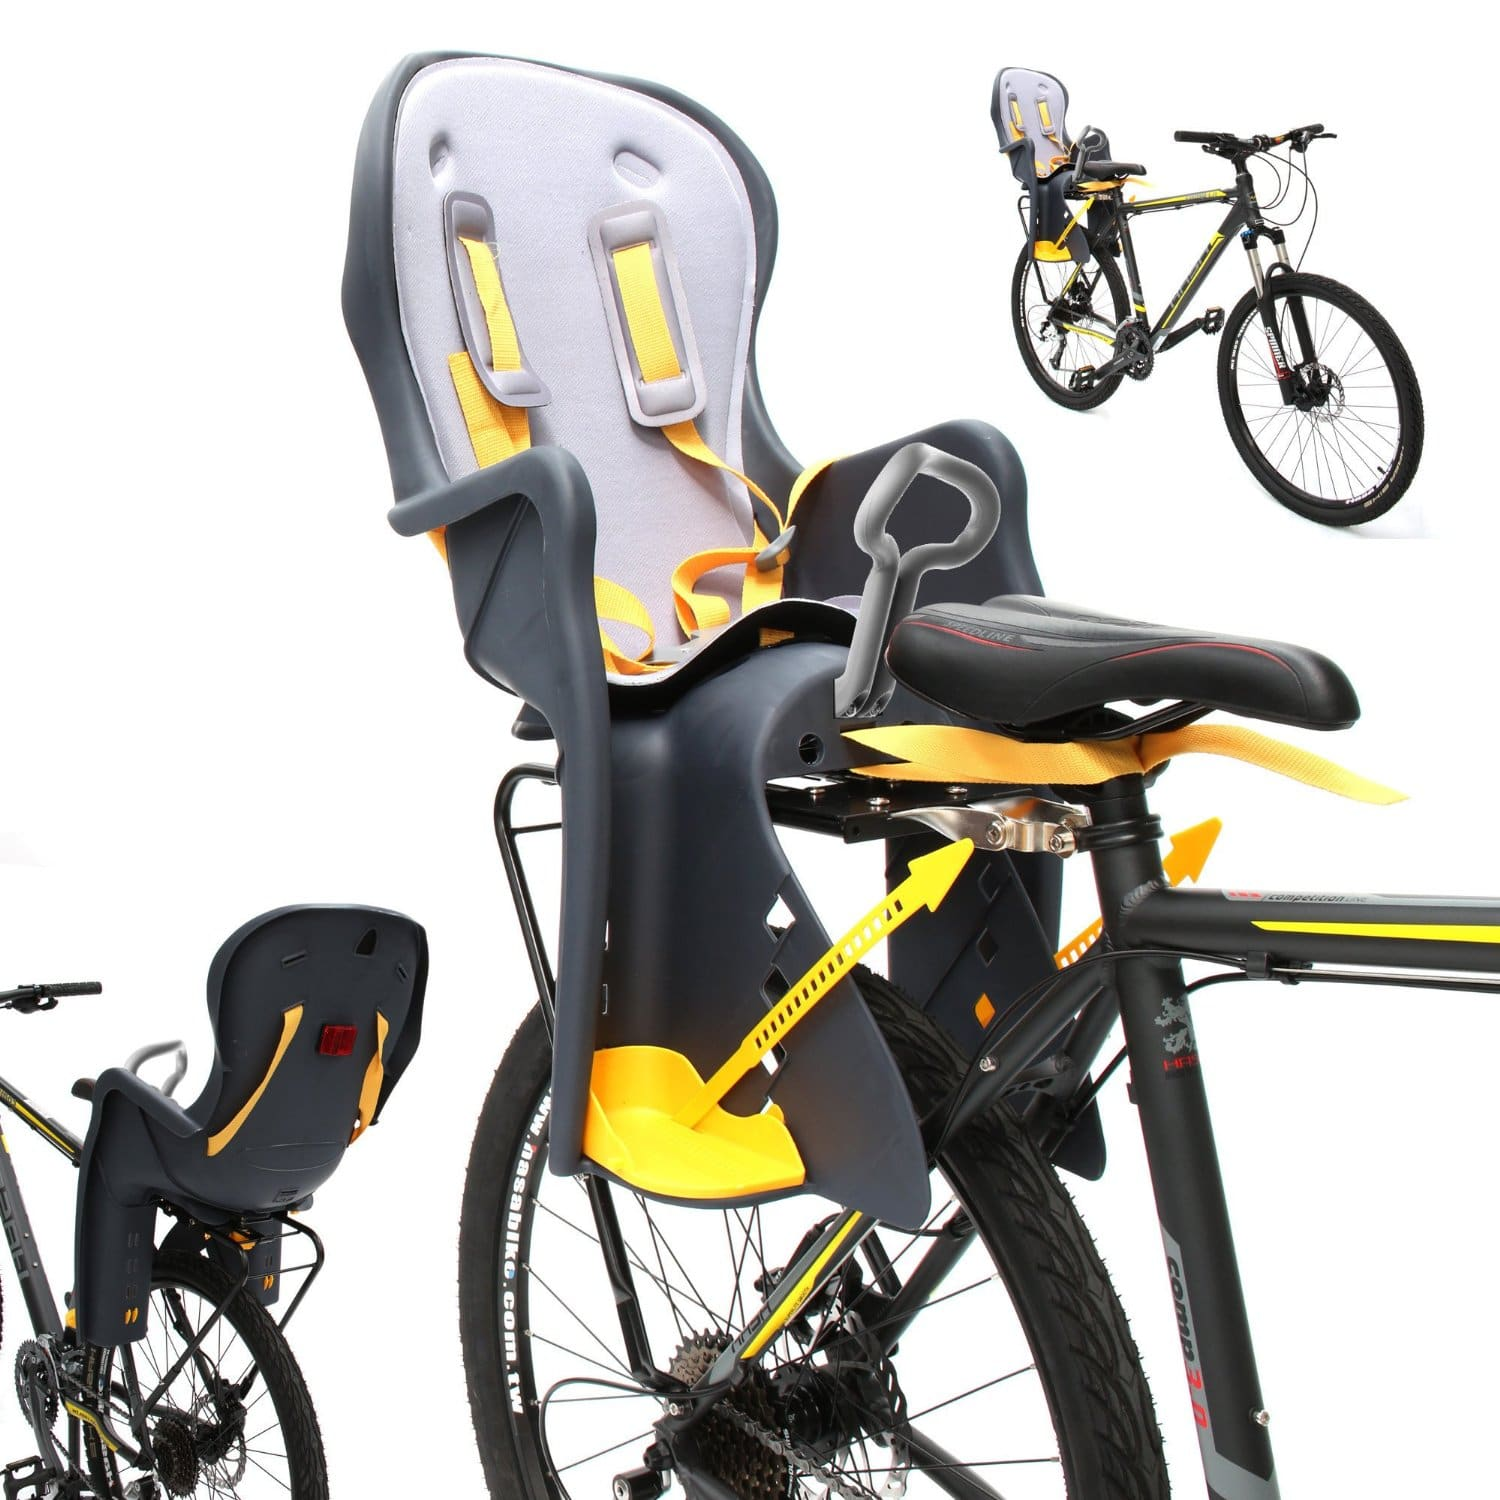 Top 10 Best Baby Bicycle Seats in 2020 Review